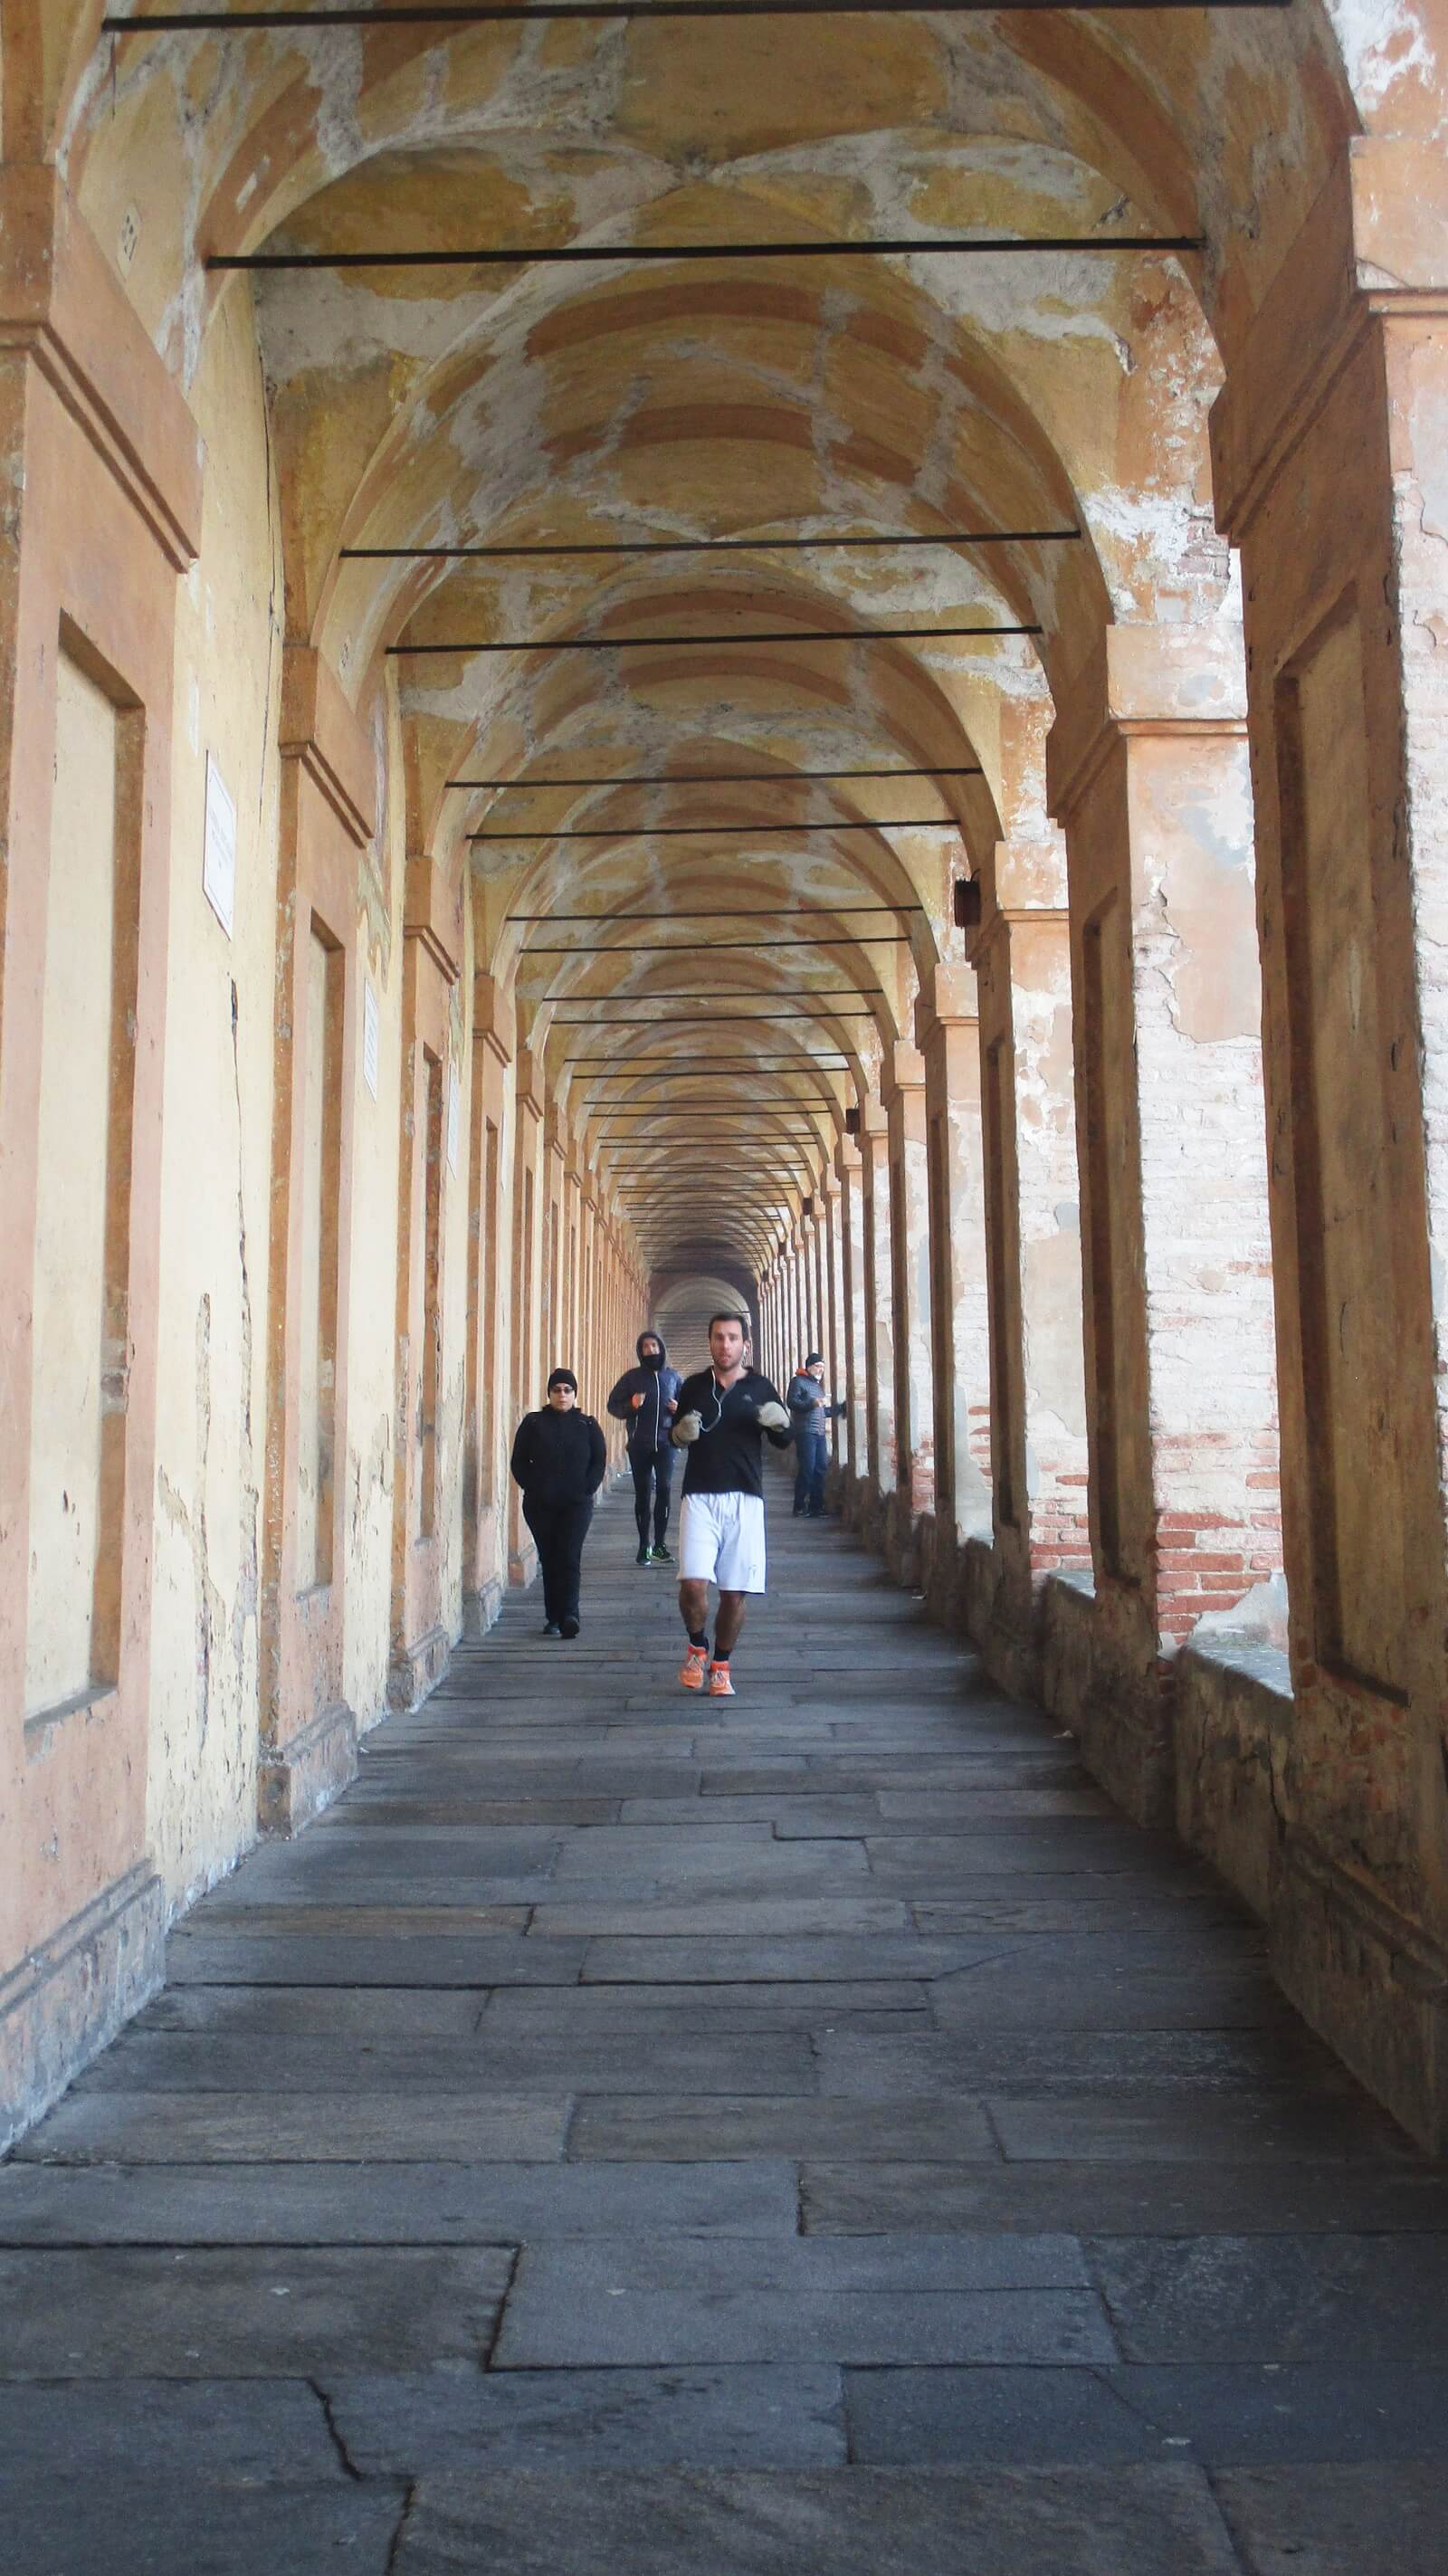 The Best of Bologna - Bezienswaardigheden